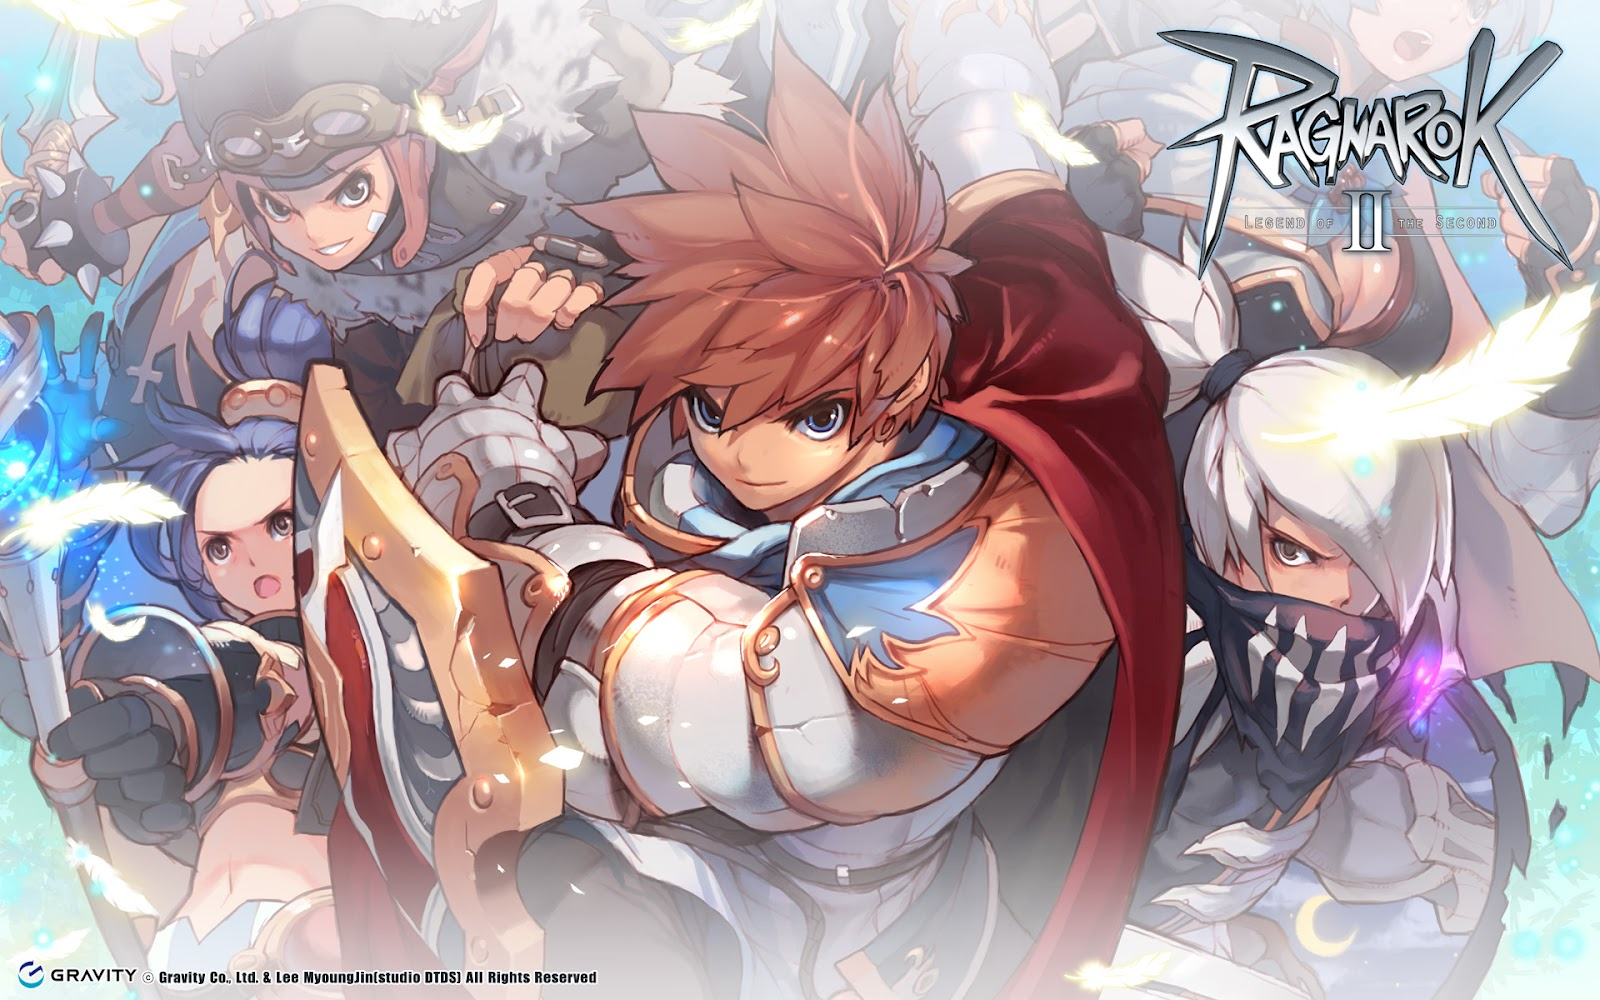 Ragnarok online 2 legend of the second sword ragnarok - Ragnarok wallpaper ...